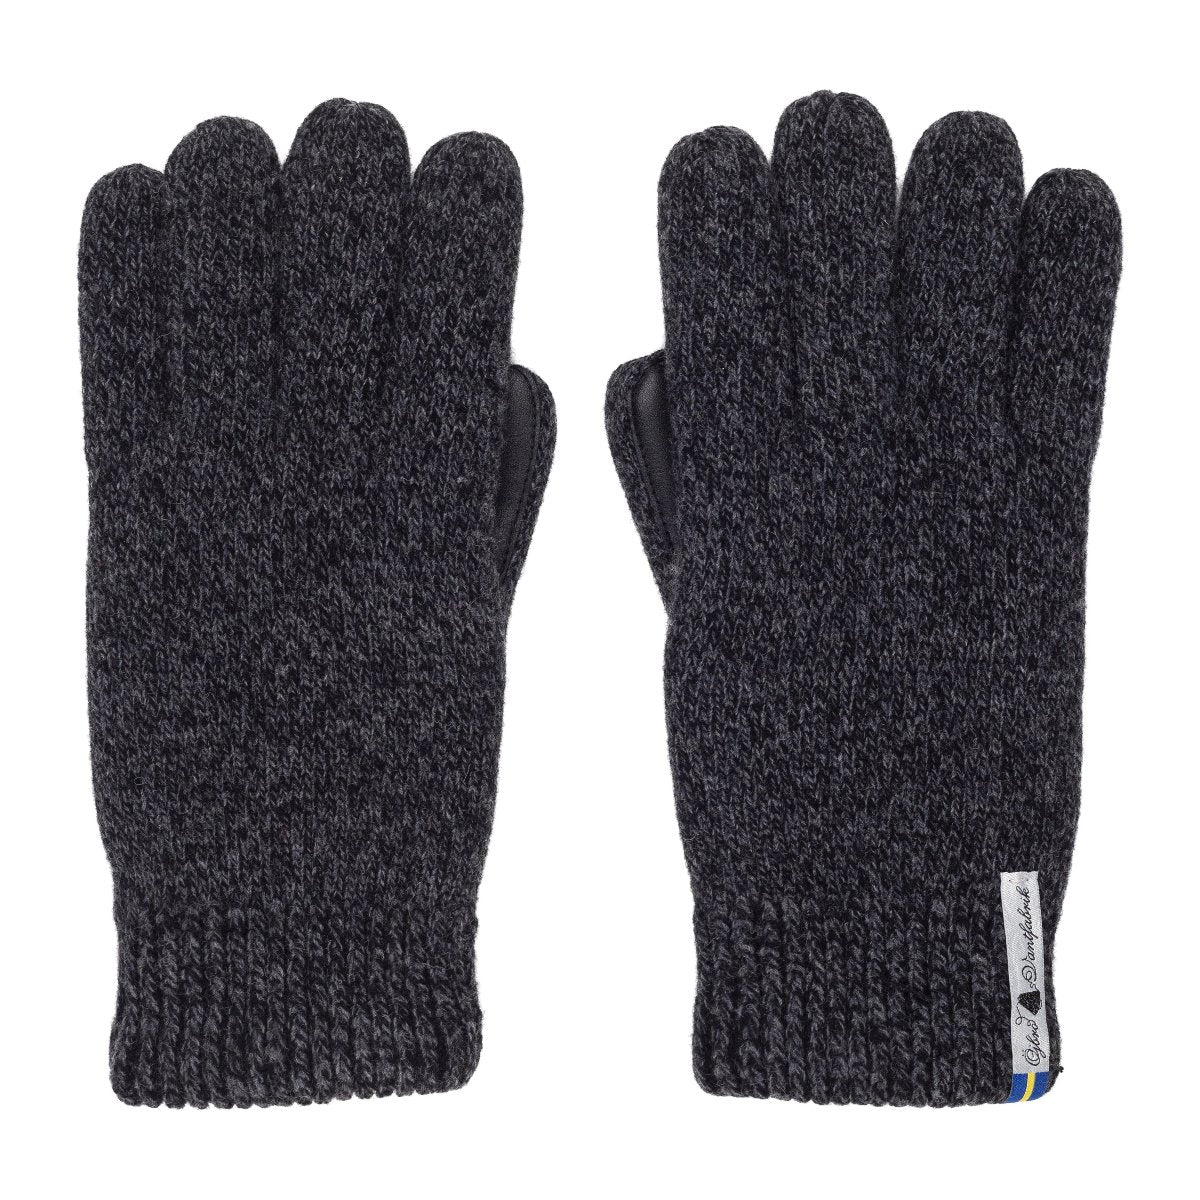 Karg Rörö Gloves